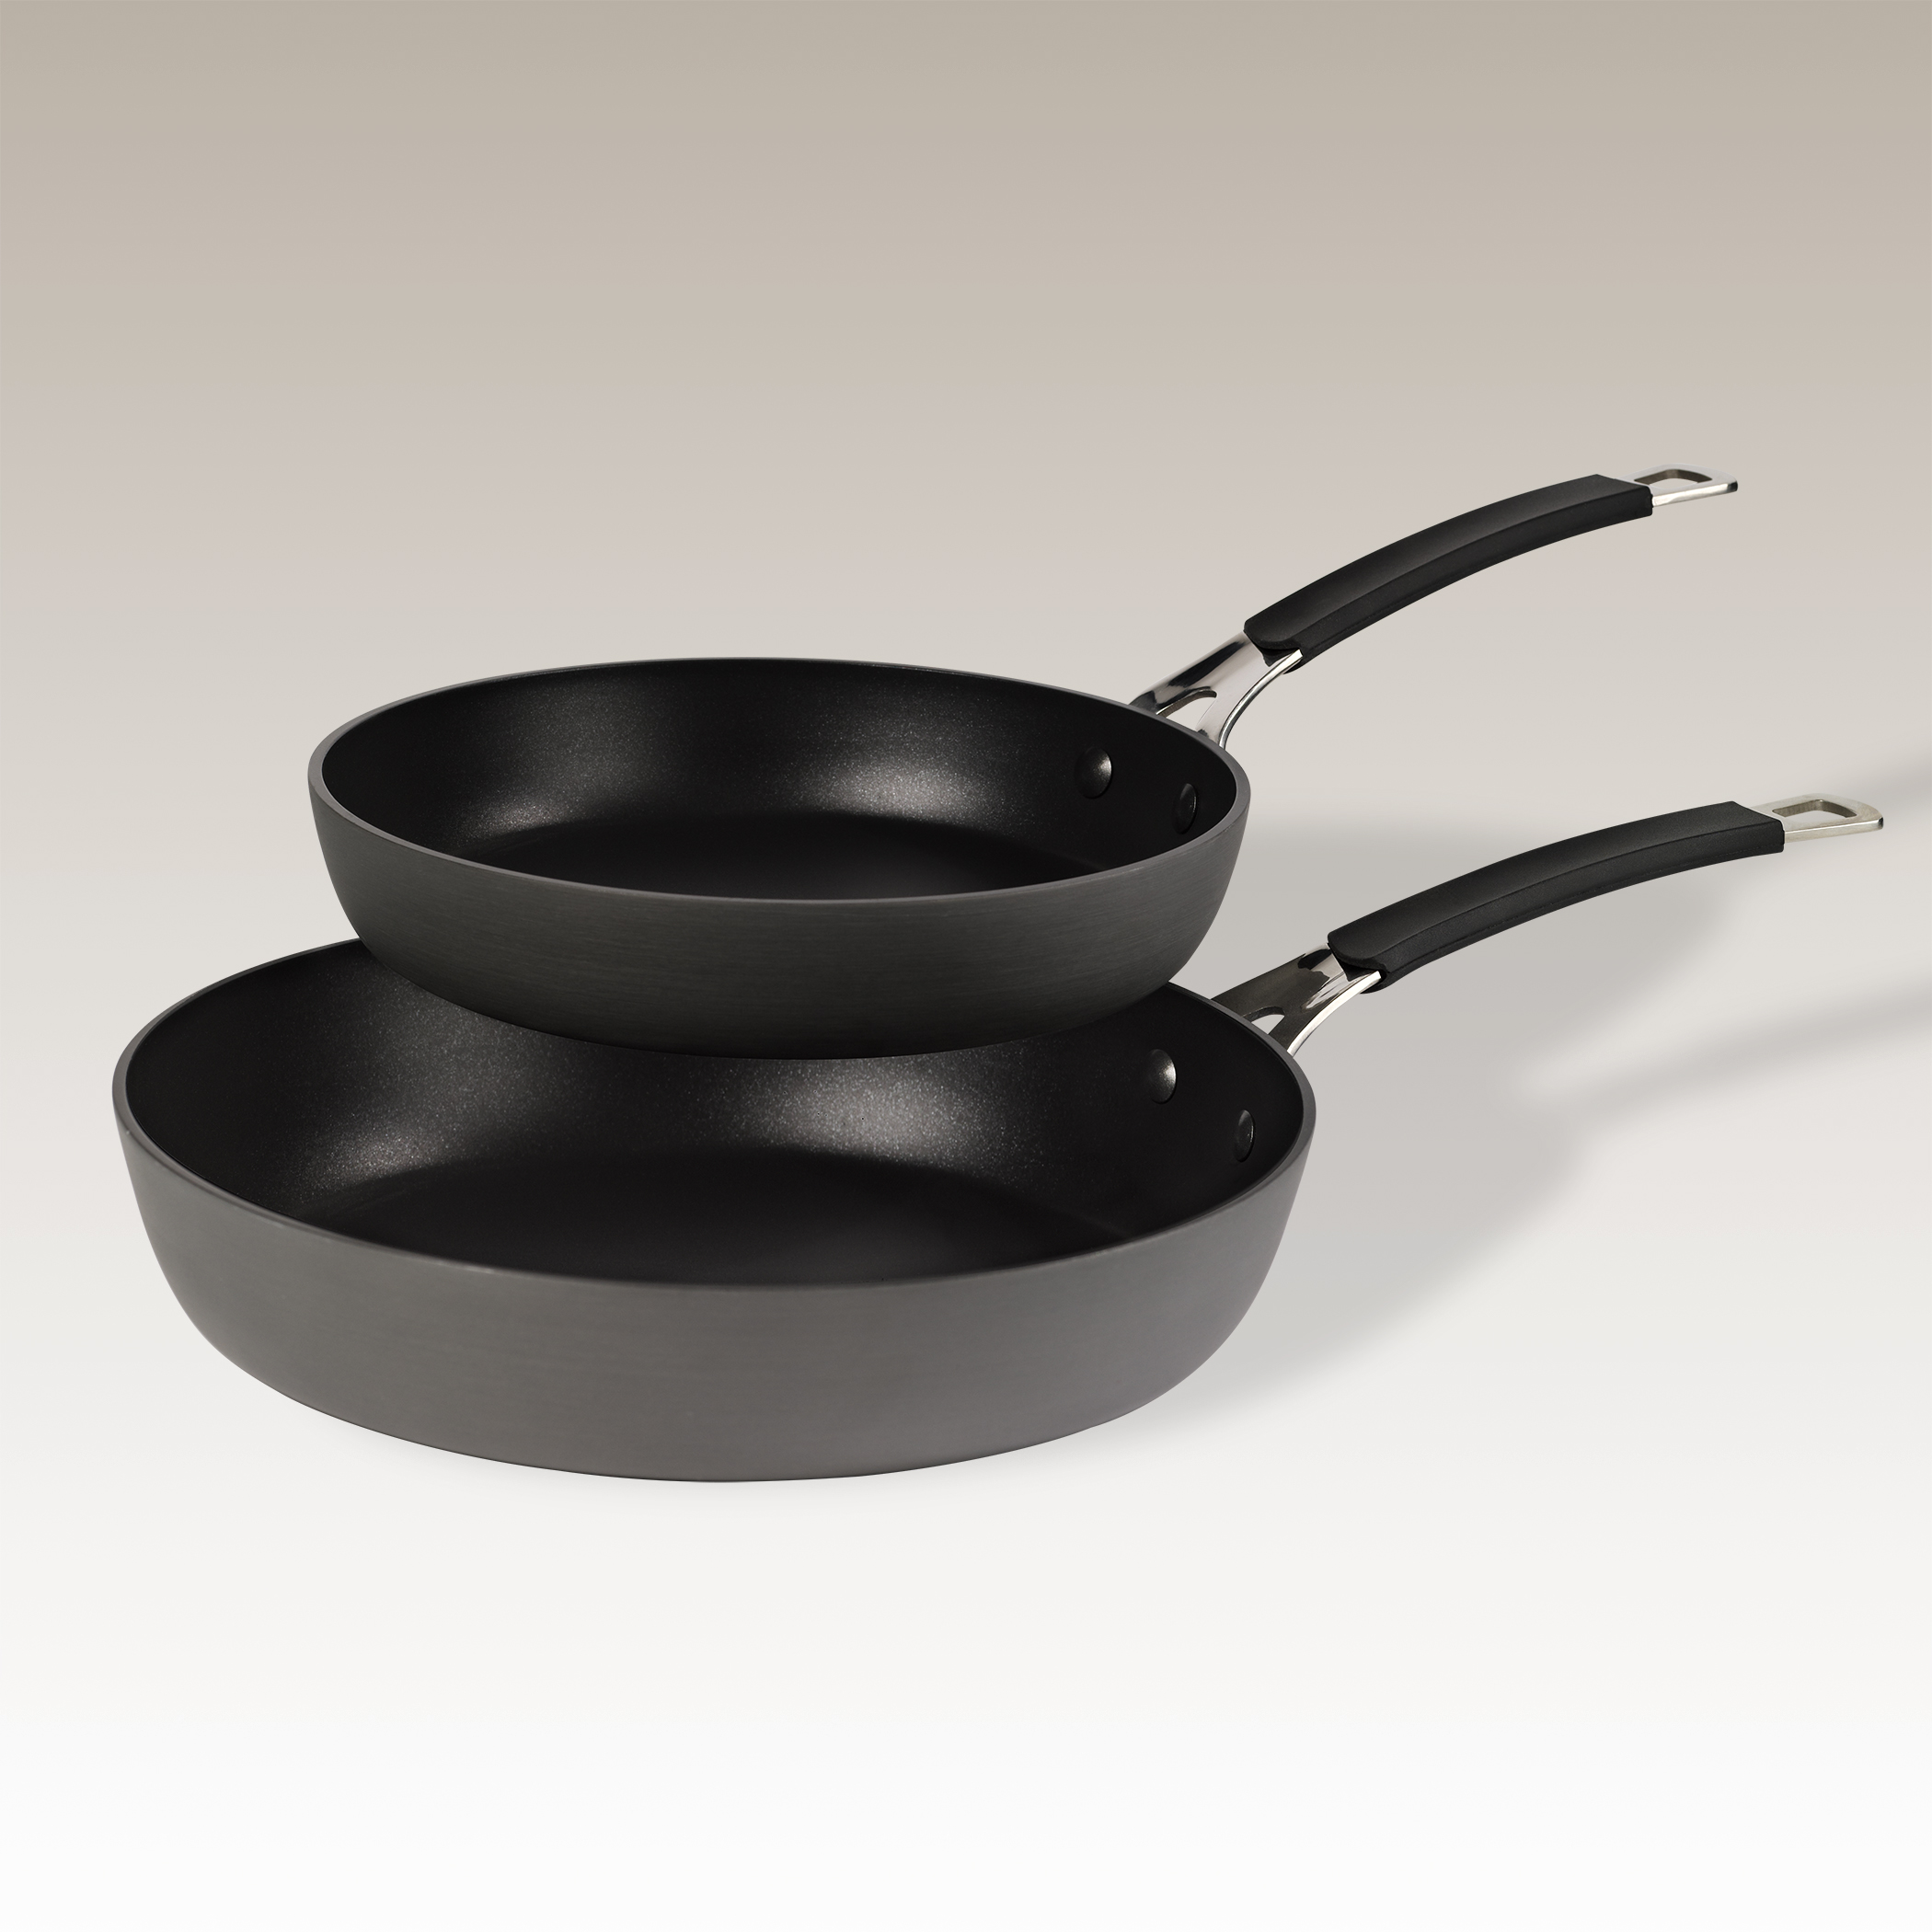 Set of two Non-stick Hard Anodized Aluminum Fry Pans by Stax Living by Stax Living